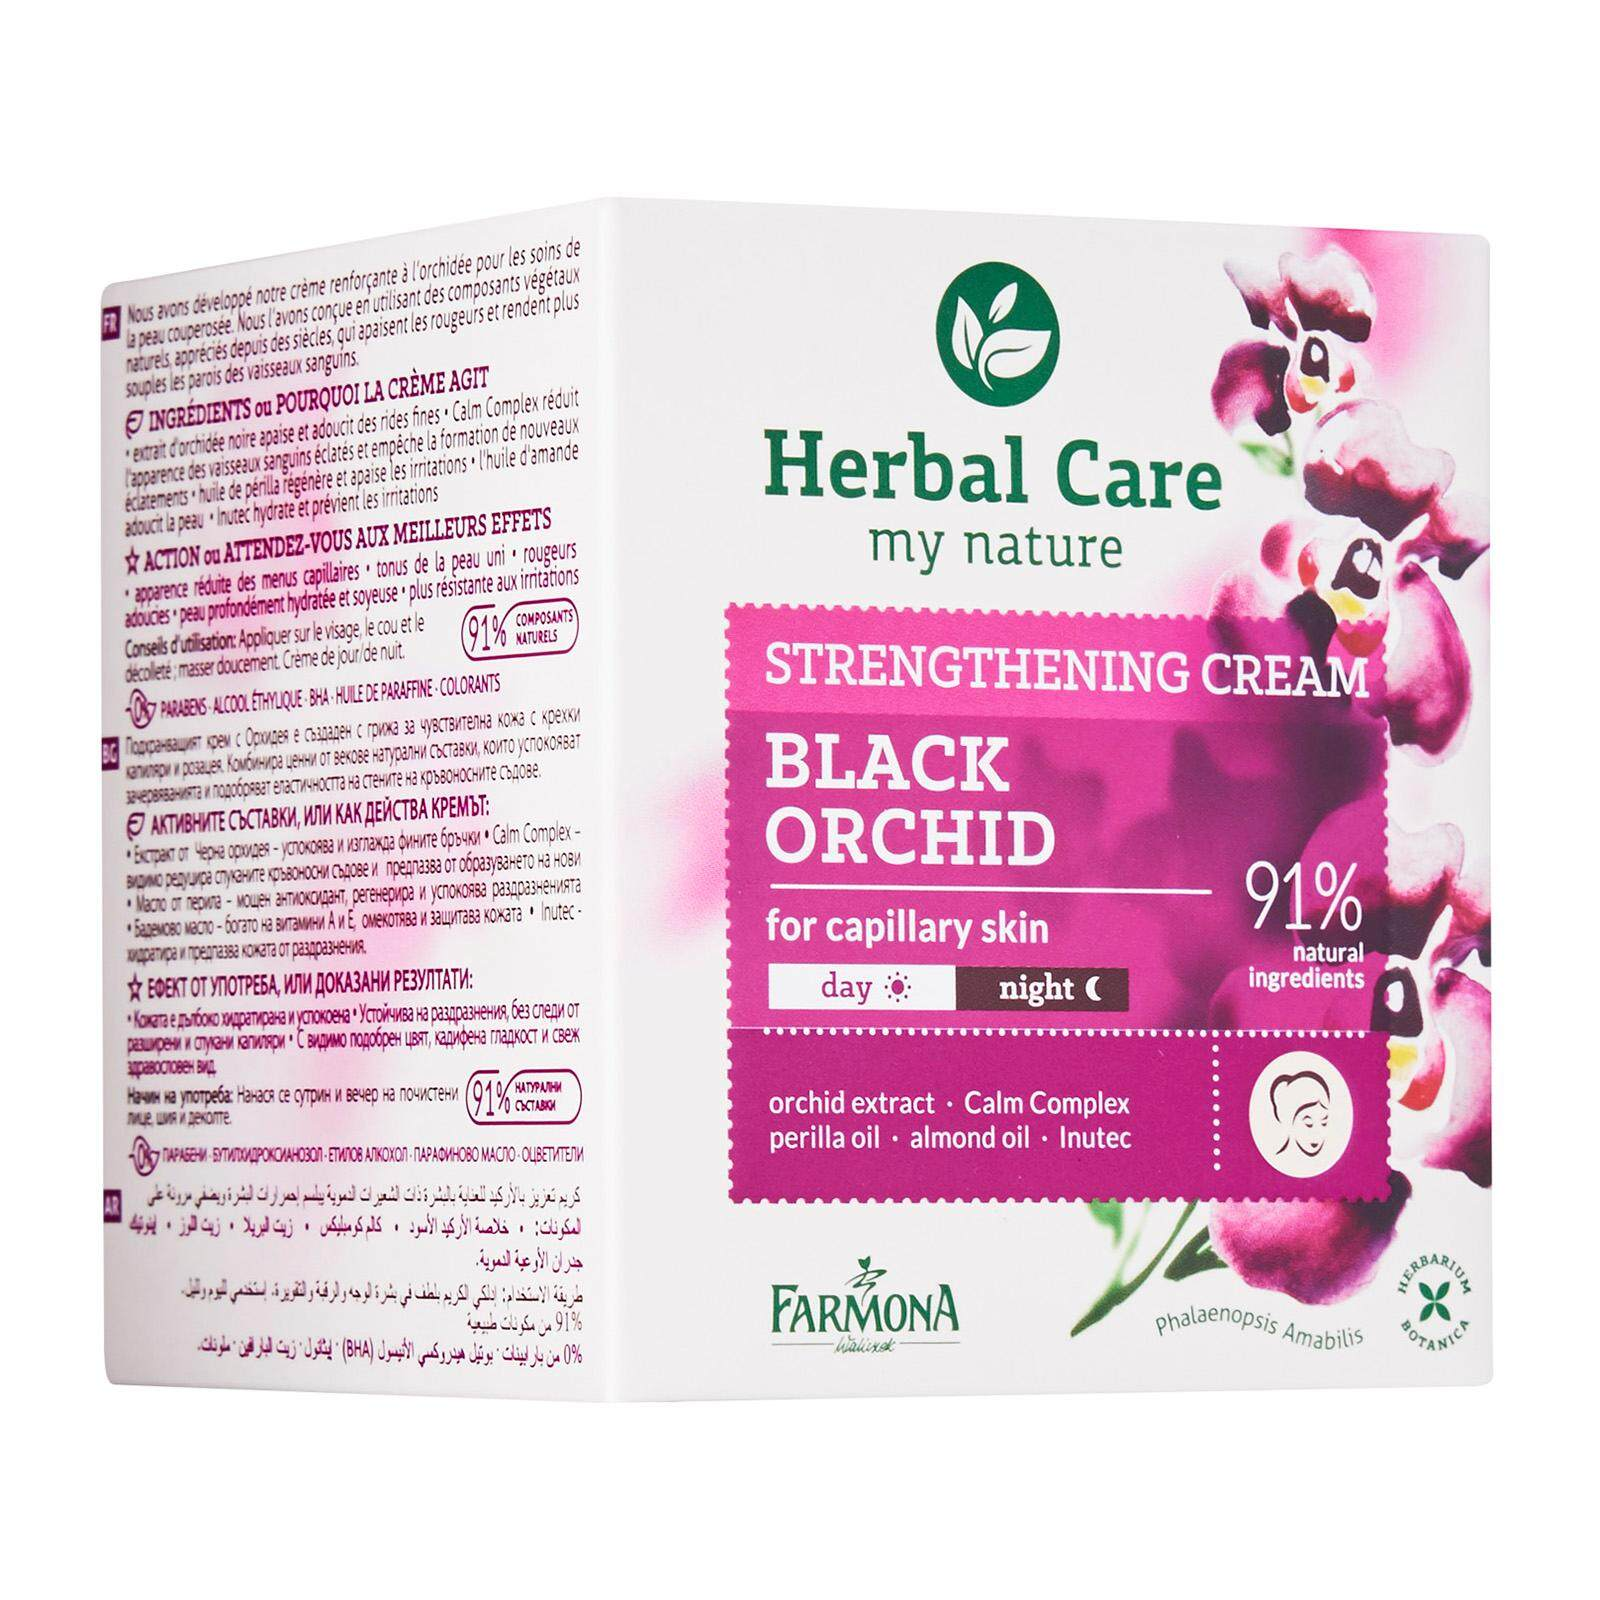 Herbal care Black Orchid Strengthening Cream day/night